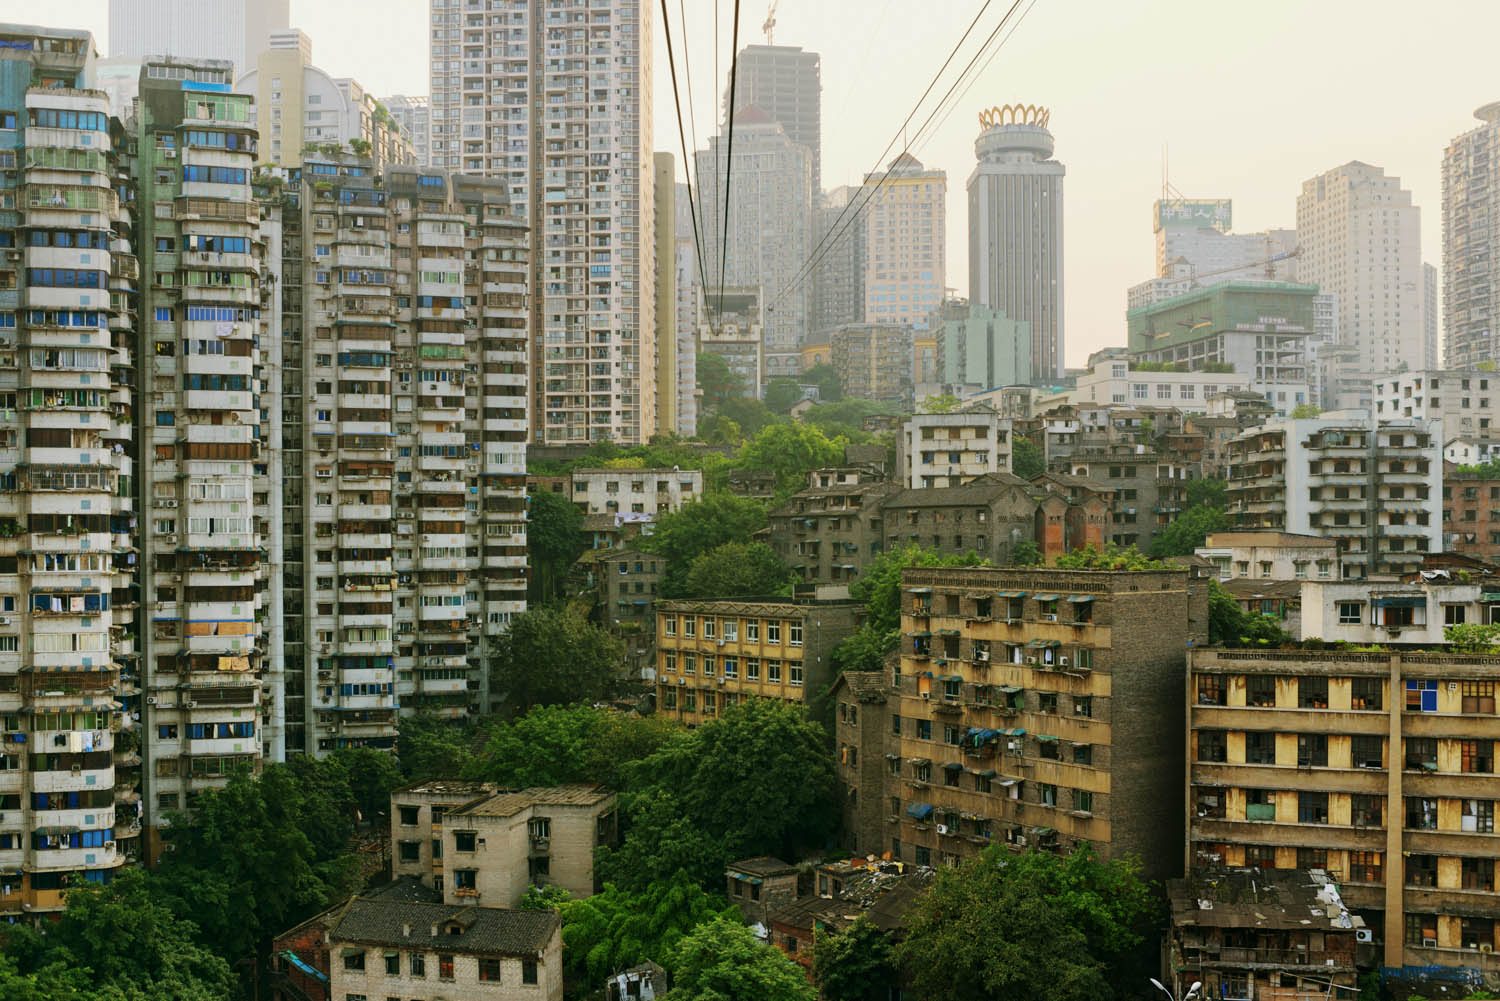 Chongqing-urban-jungle-2.jpg